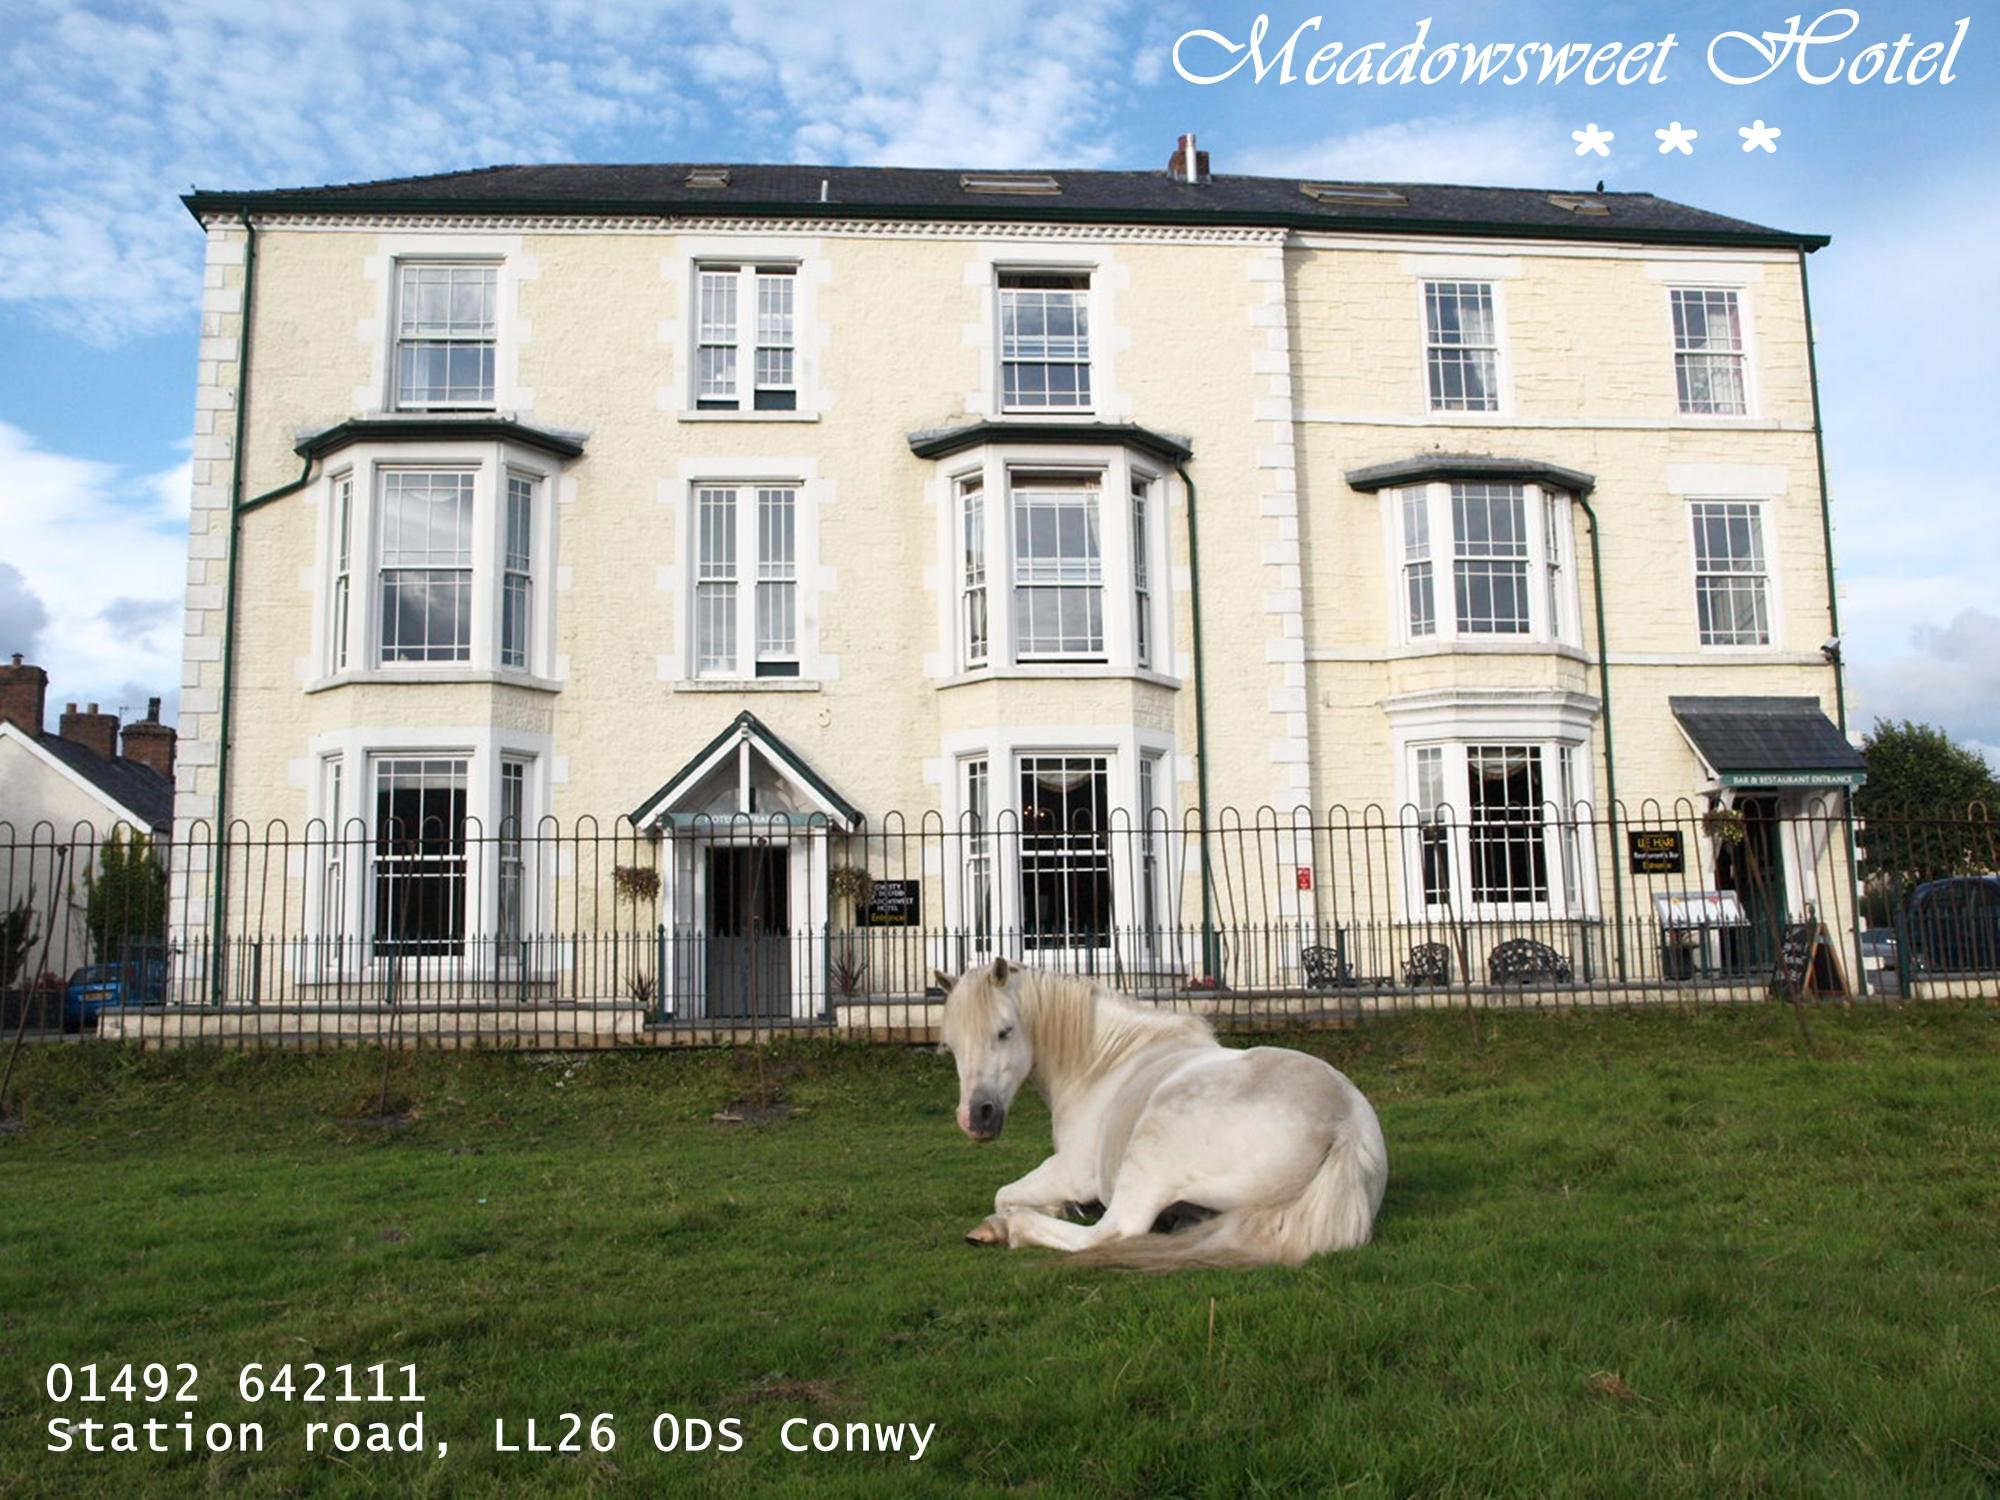 The Meadowsweet Hotel